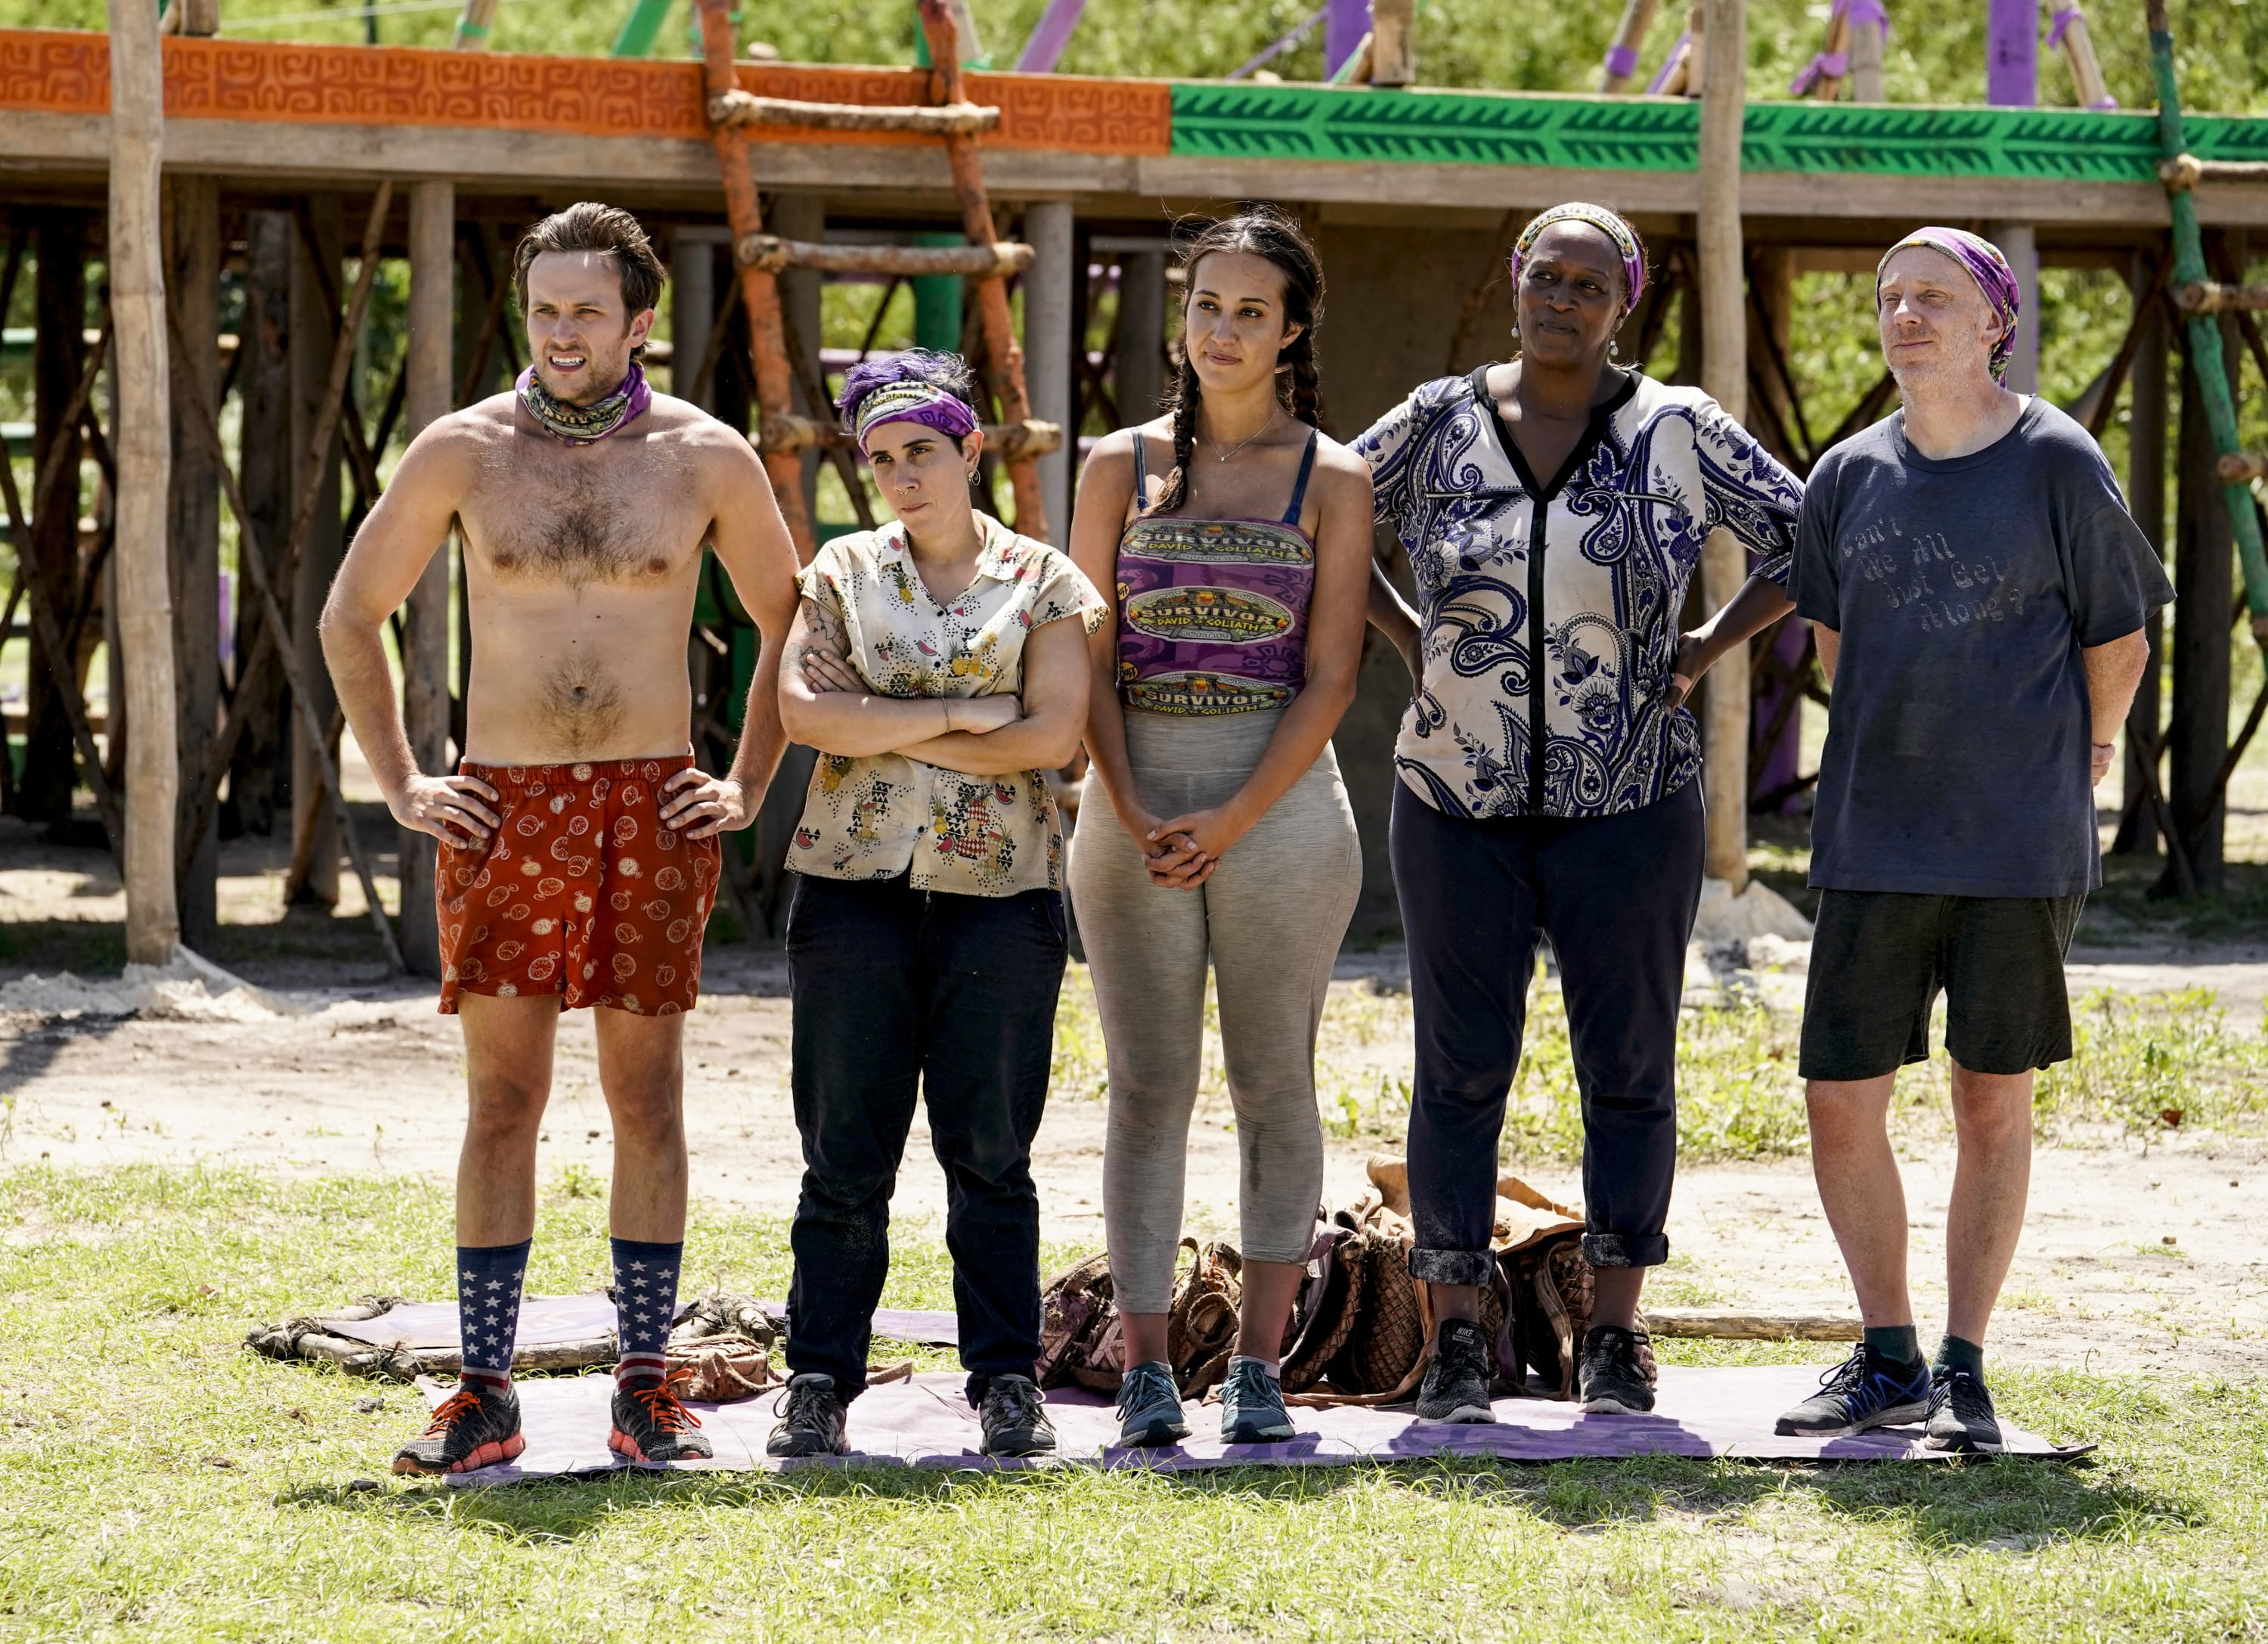 Natalie Cole and other contestants on Survivor: David vs. Goliath